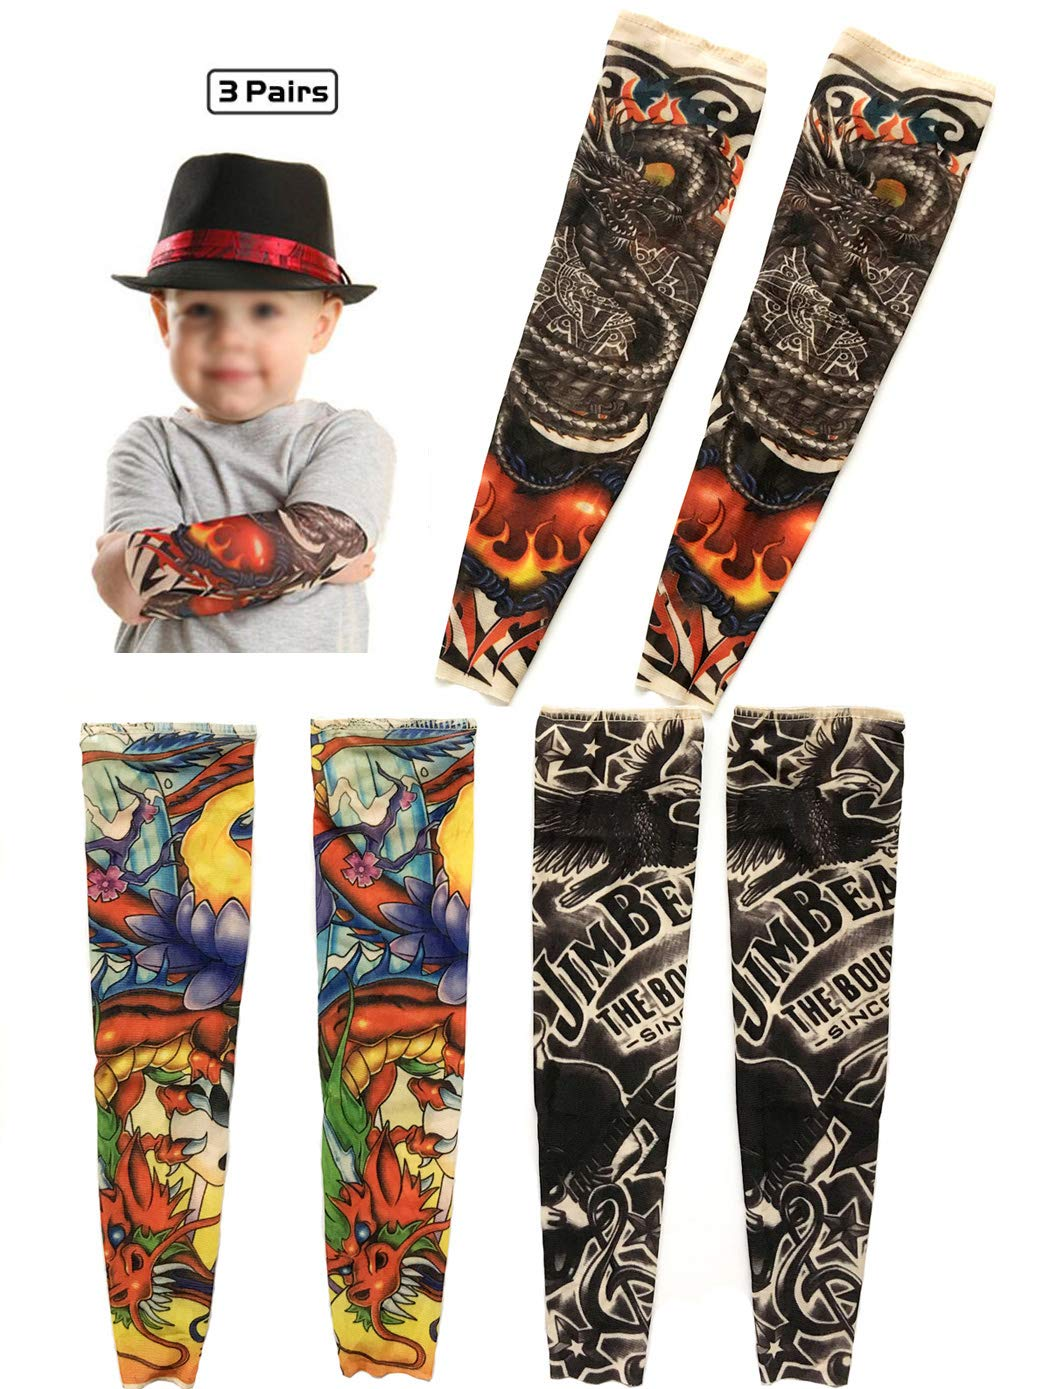 Temporary Tattoo Sleeves for Kids, iToolai Art Cooling Arm Cover Up Fake Tattoo Sleeves for Boy Girl Sunscreen(3 Pairs)